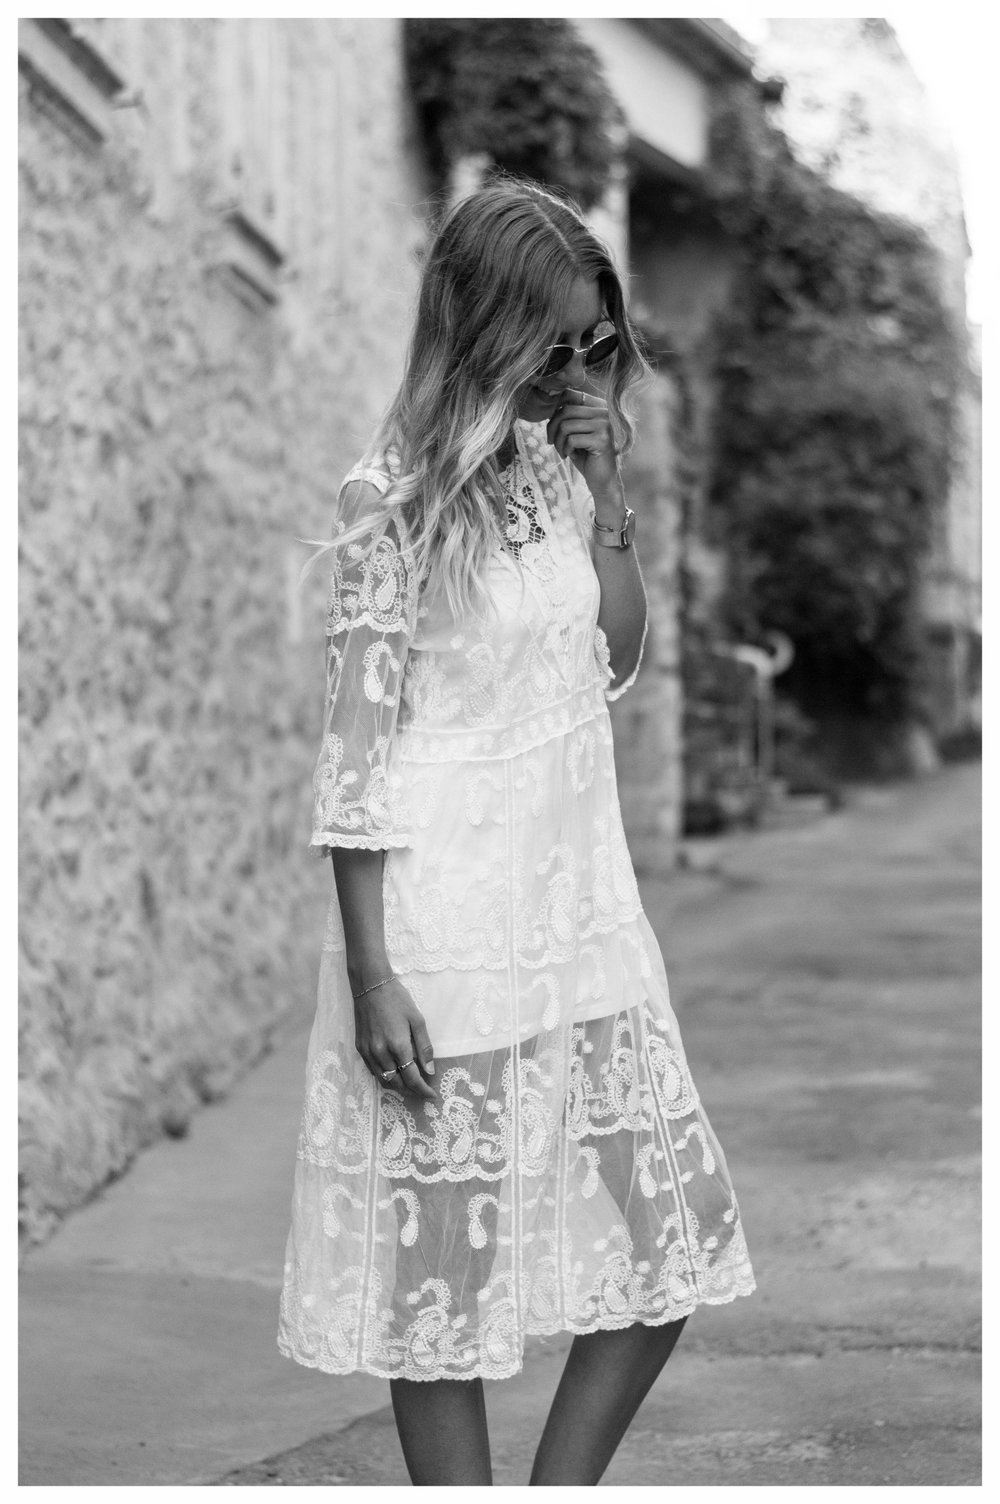 Cornillon White Dress June - OSIARAH.COM (11 of 27).jpg